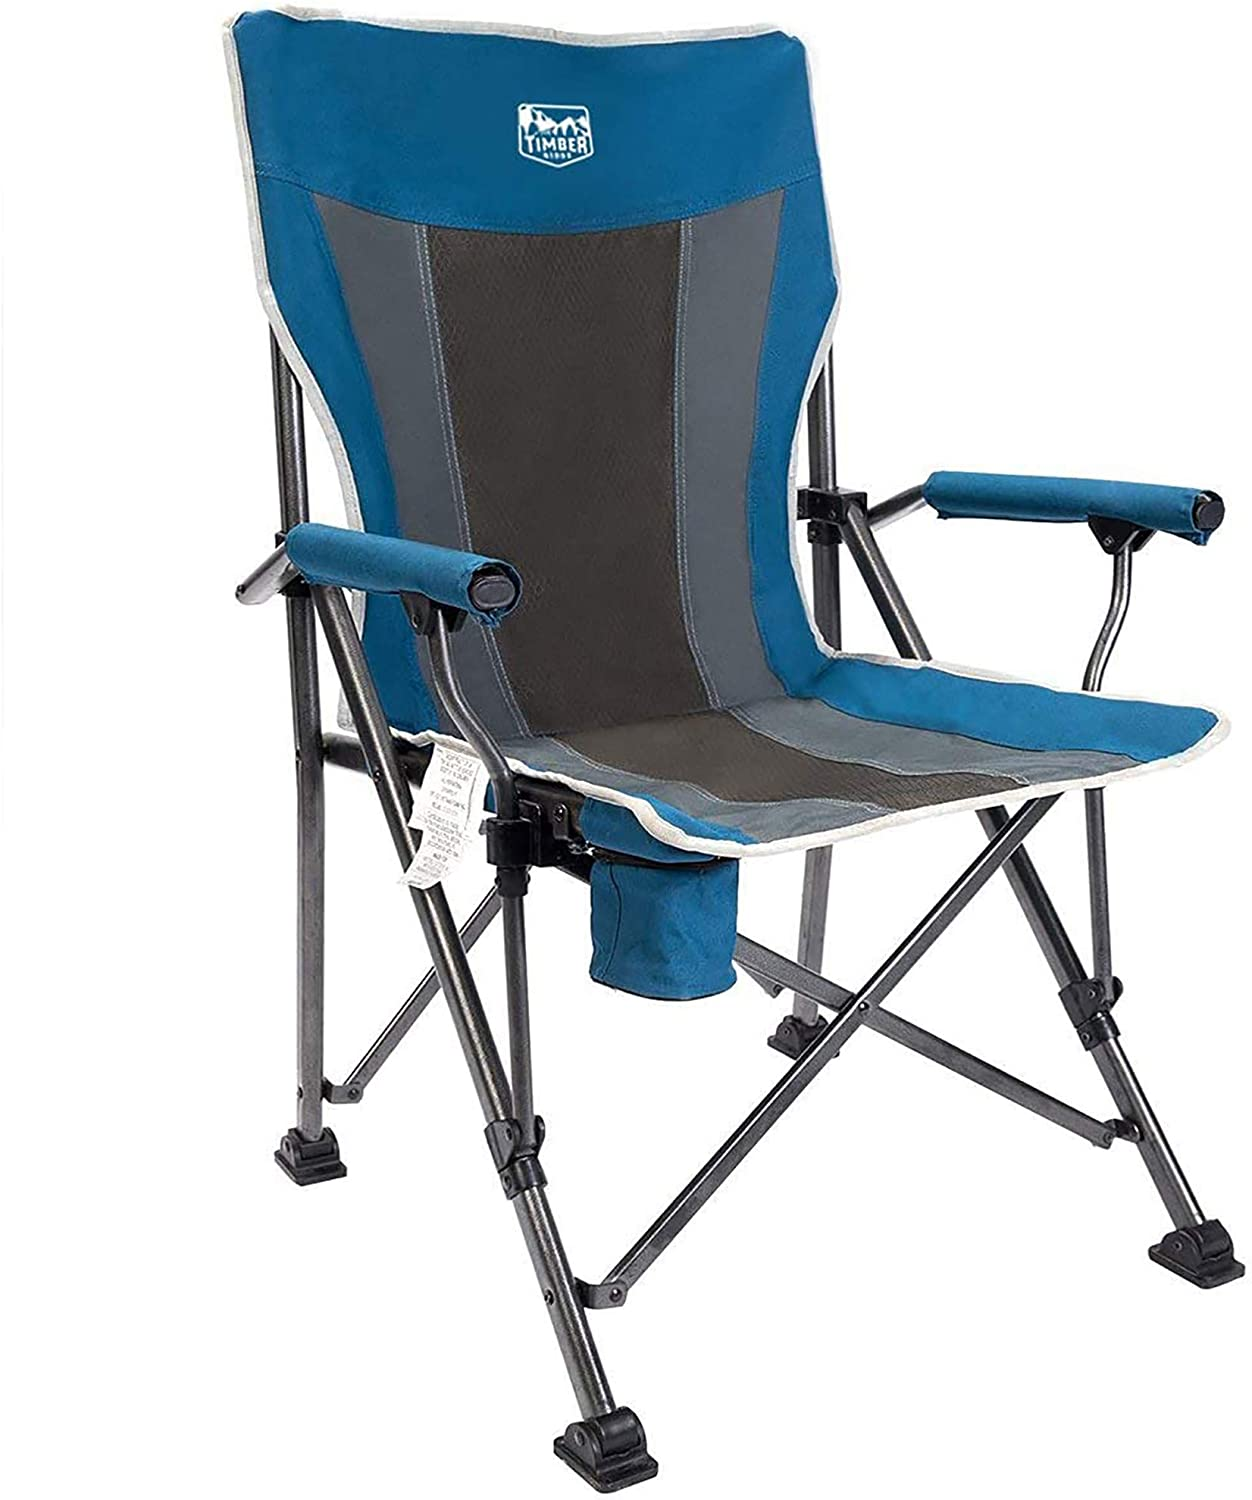 Best Camping Chair For Tall Person